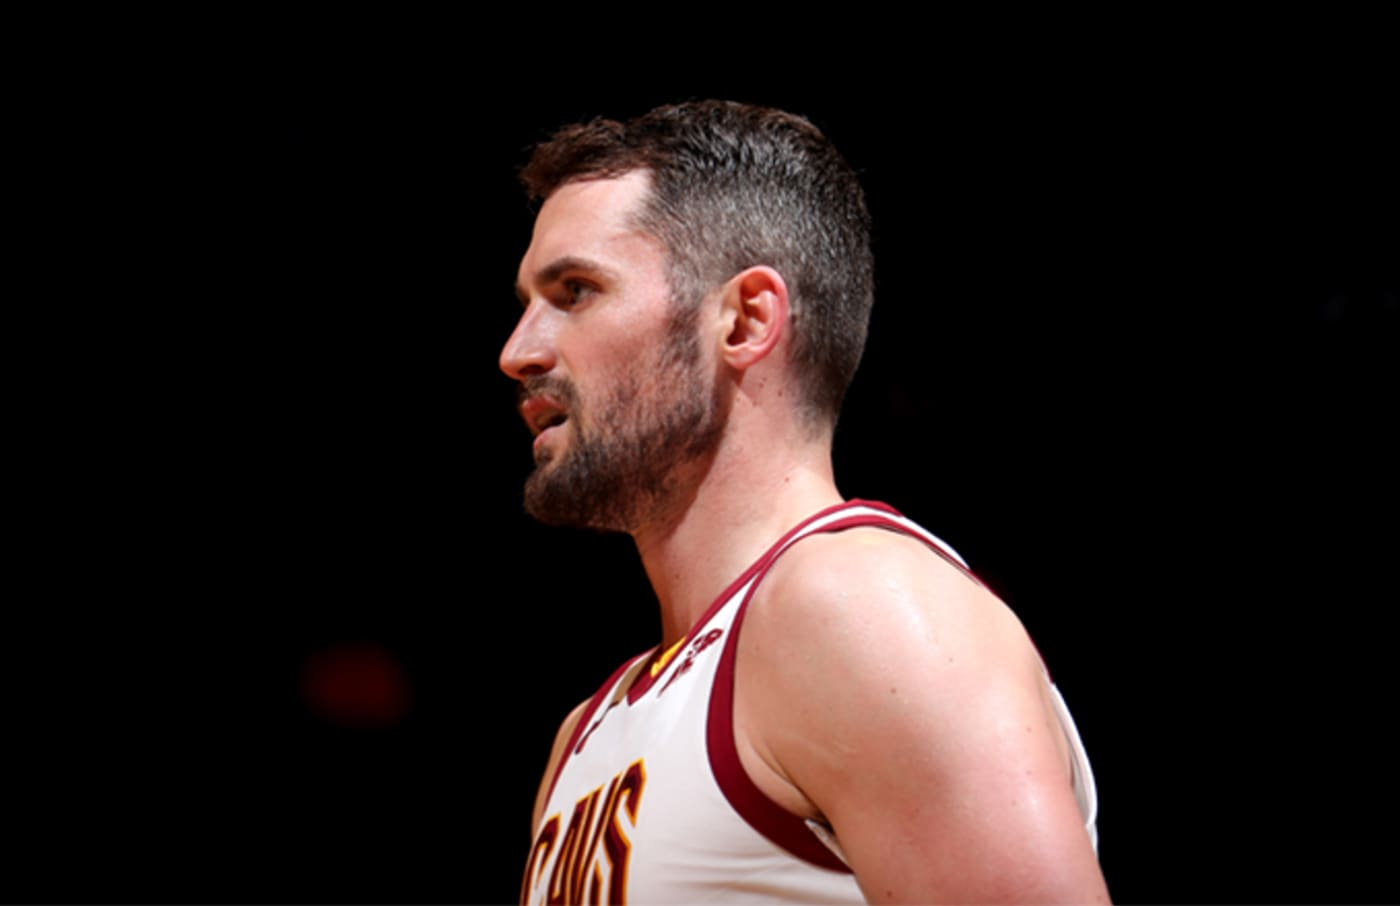 kevin love getty 2018 nathaniel s butler